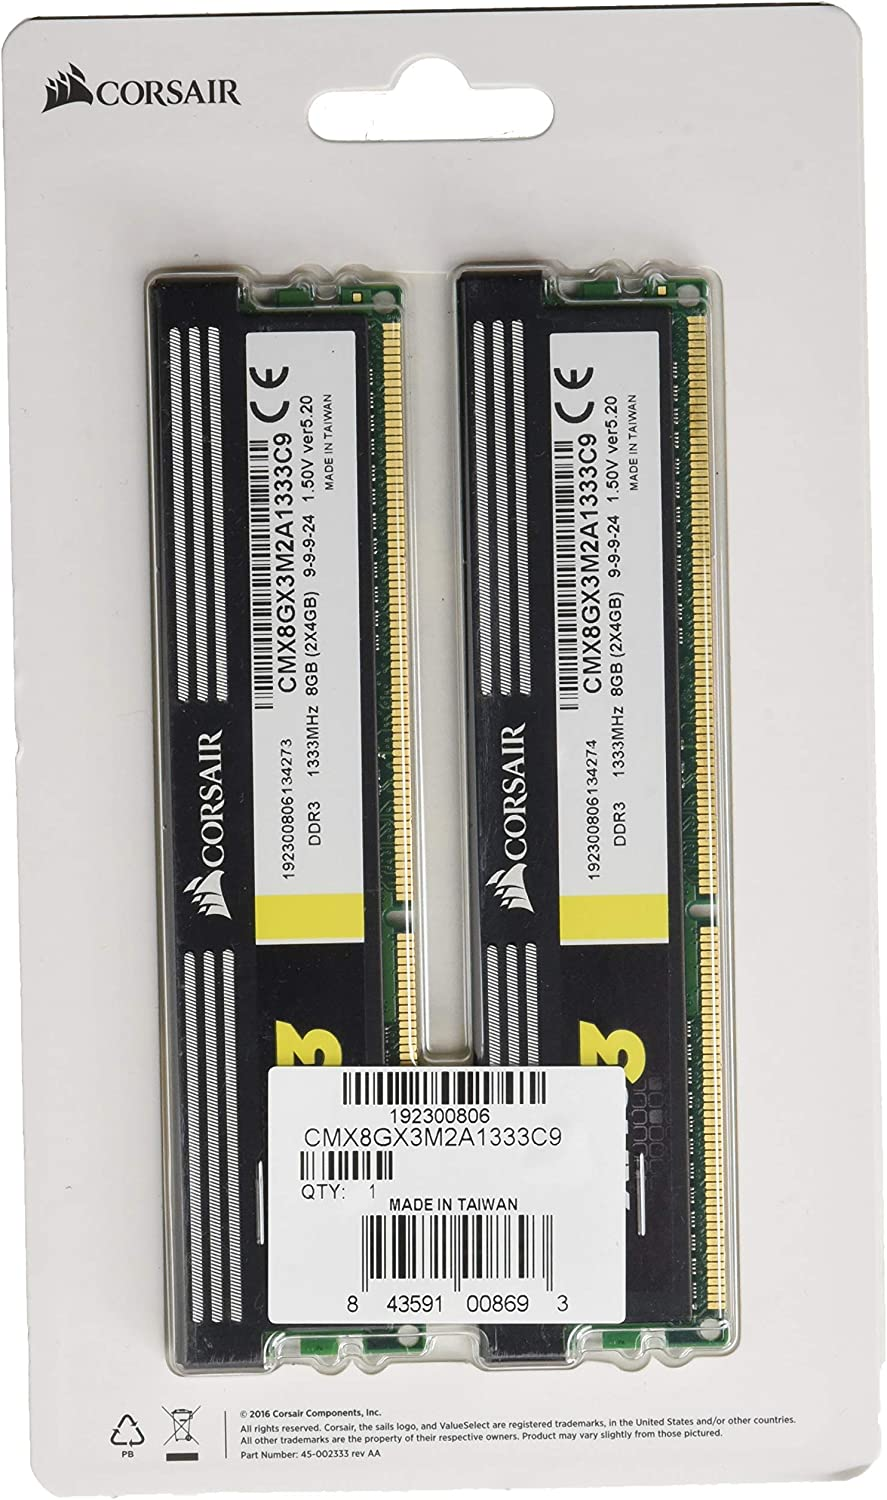 Corsair XMS3 8 GB (2 x 4GB) 1333 MHz PC3-10666 240-Pin DDR3 Memory Kit 1.5V